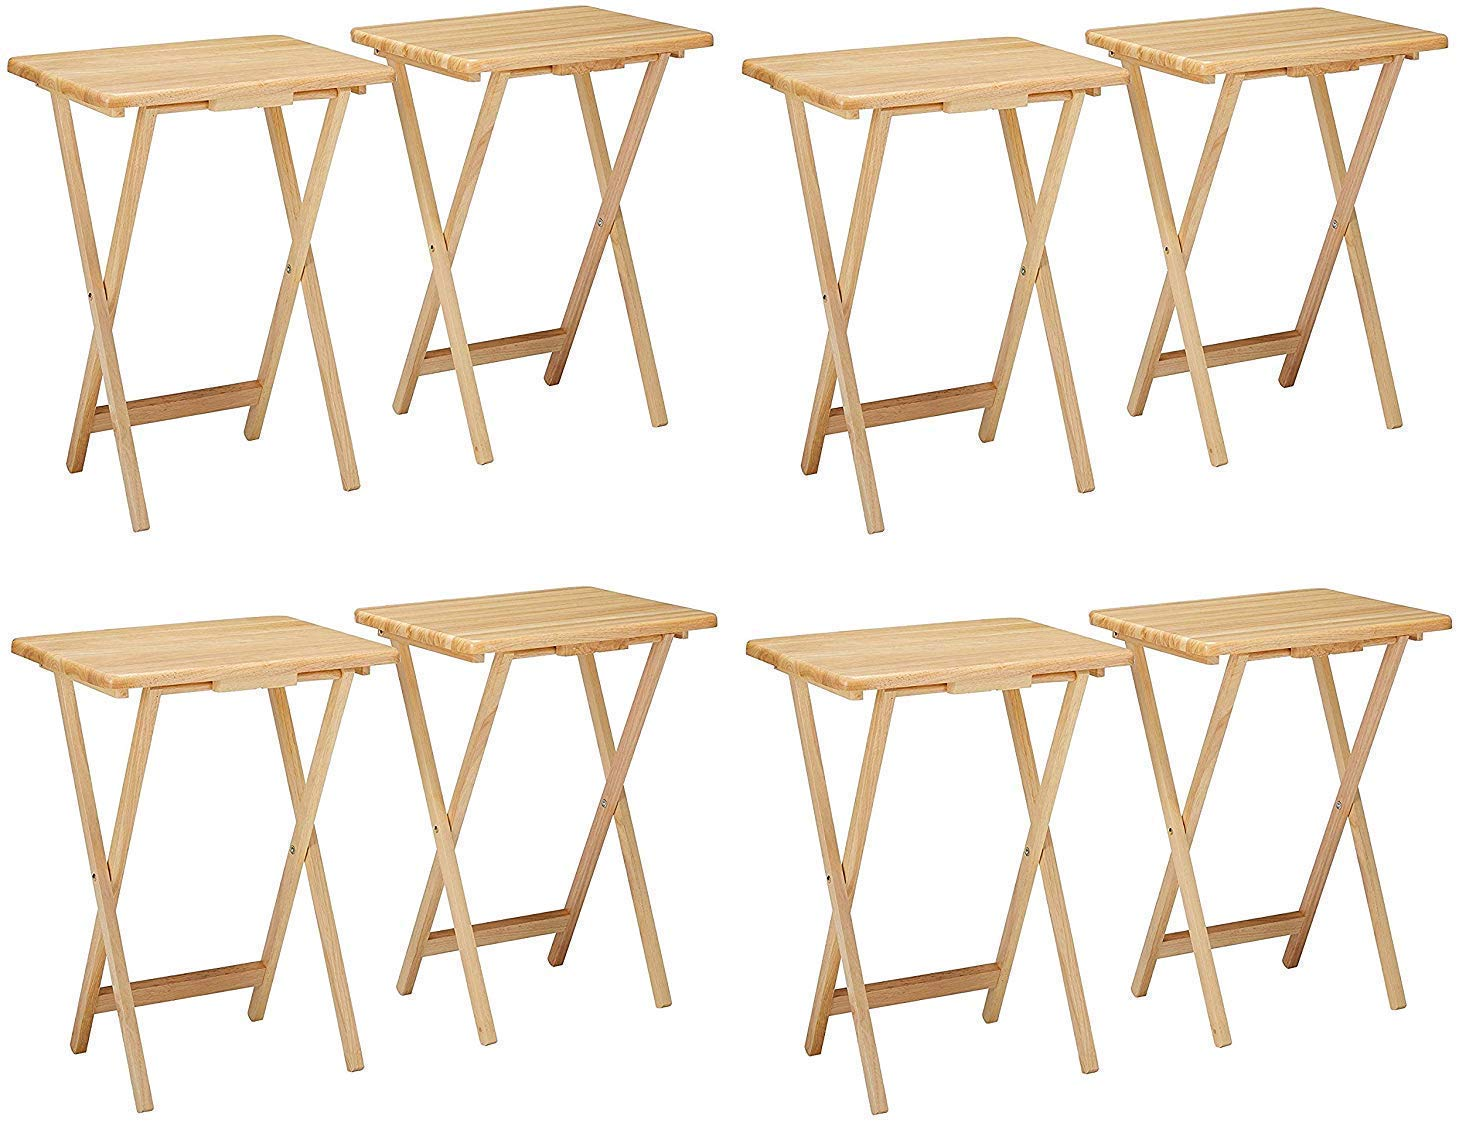 Winsome 42290 Alex Set TV Table, Natural (4 X Pack of 2) by Winsome